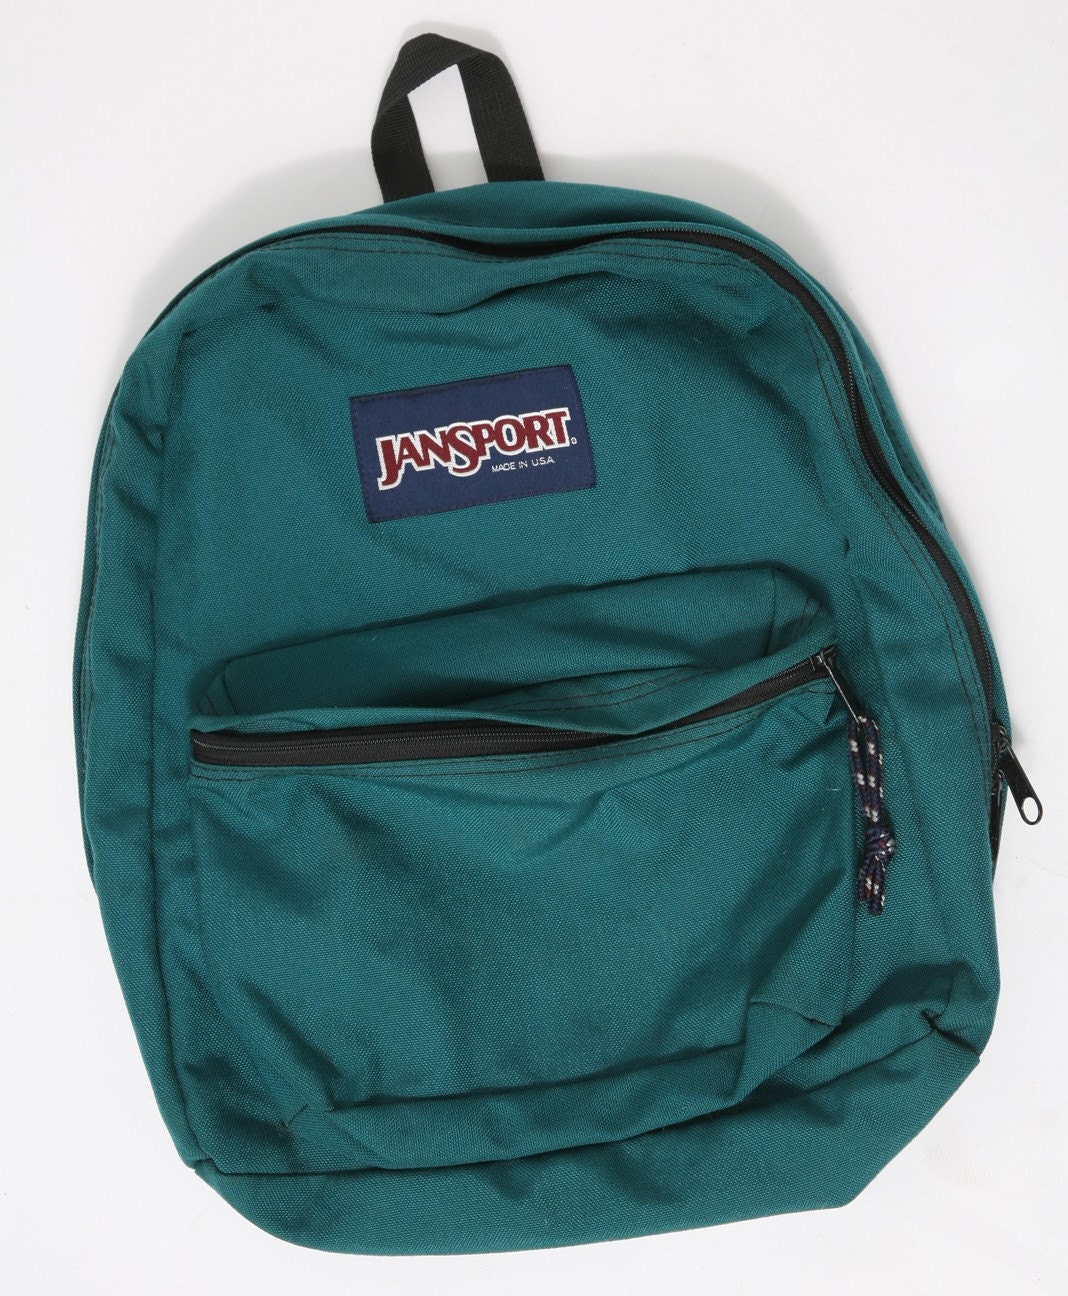 Teal Jansport Backpack Made in USA